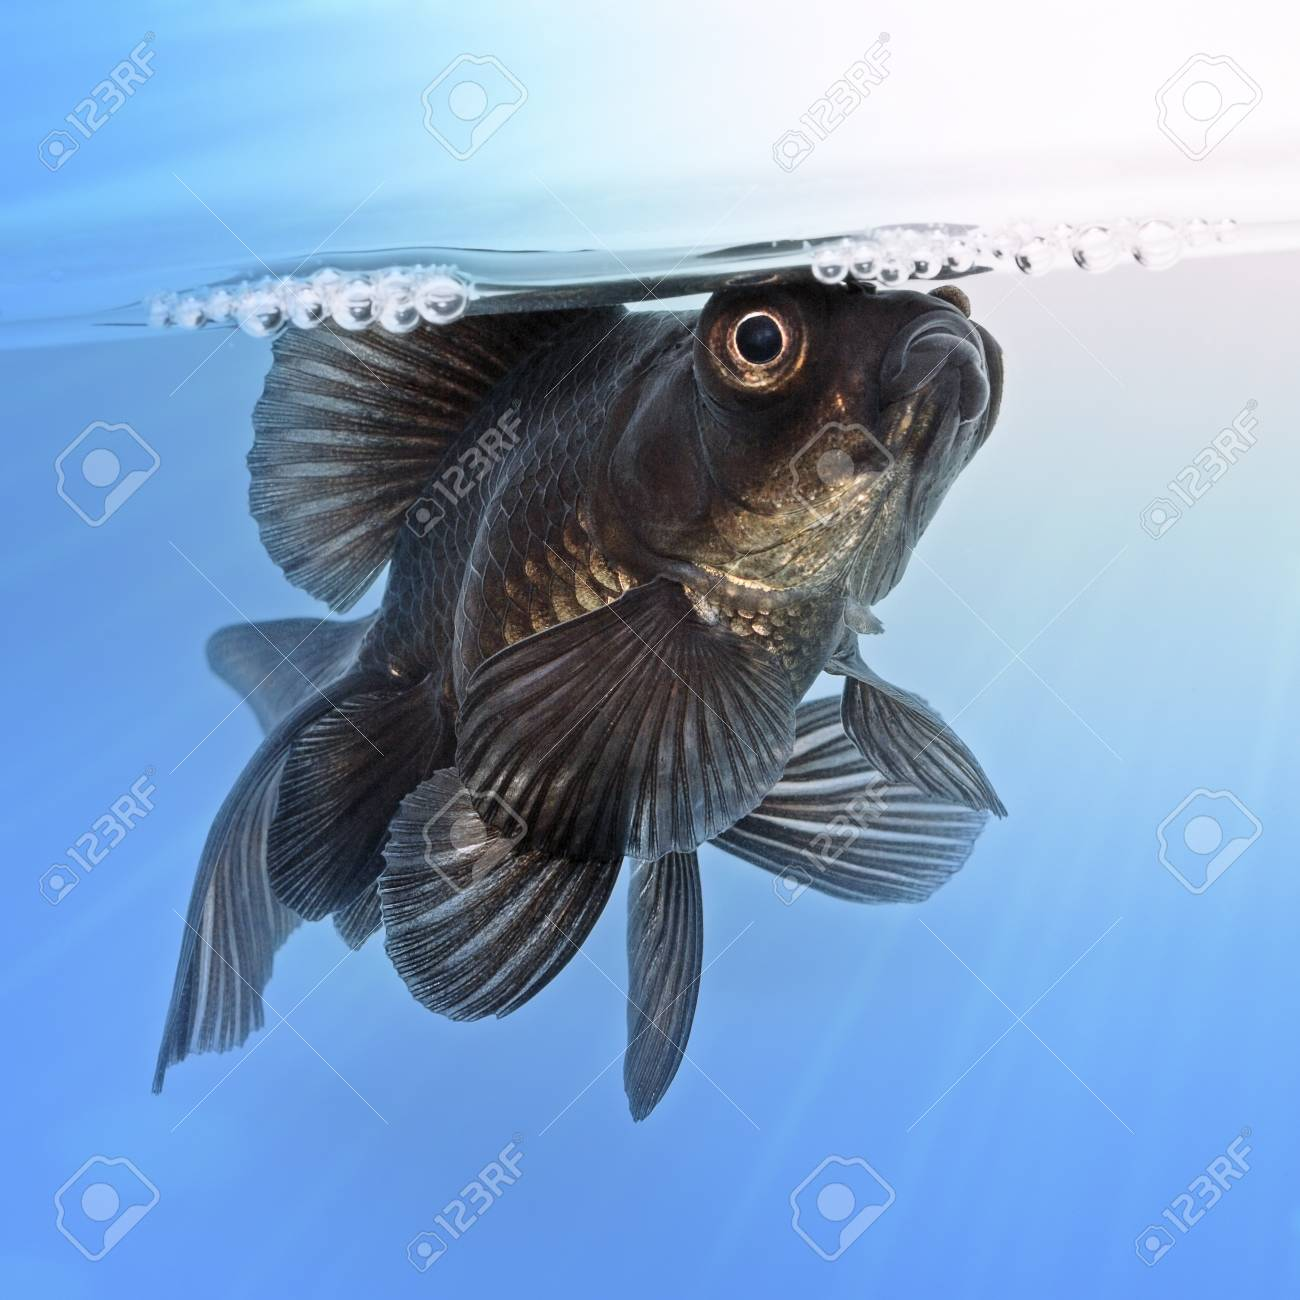 Black goldfish in the water Stock Photo - 20163196